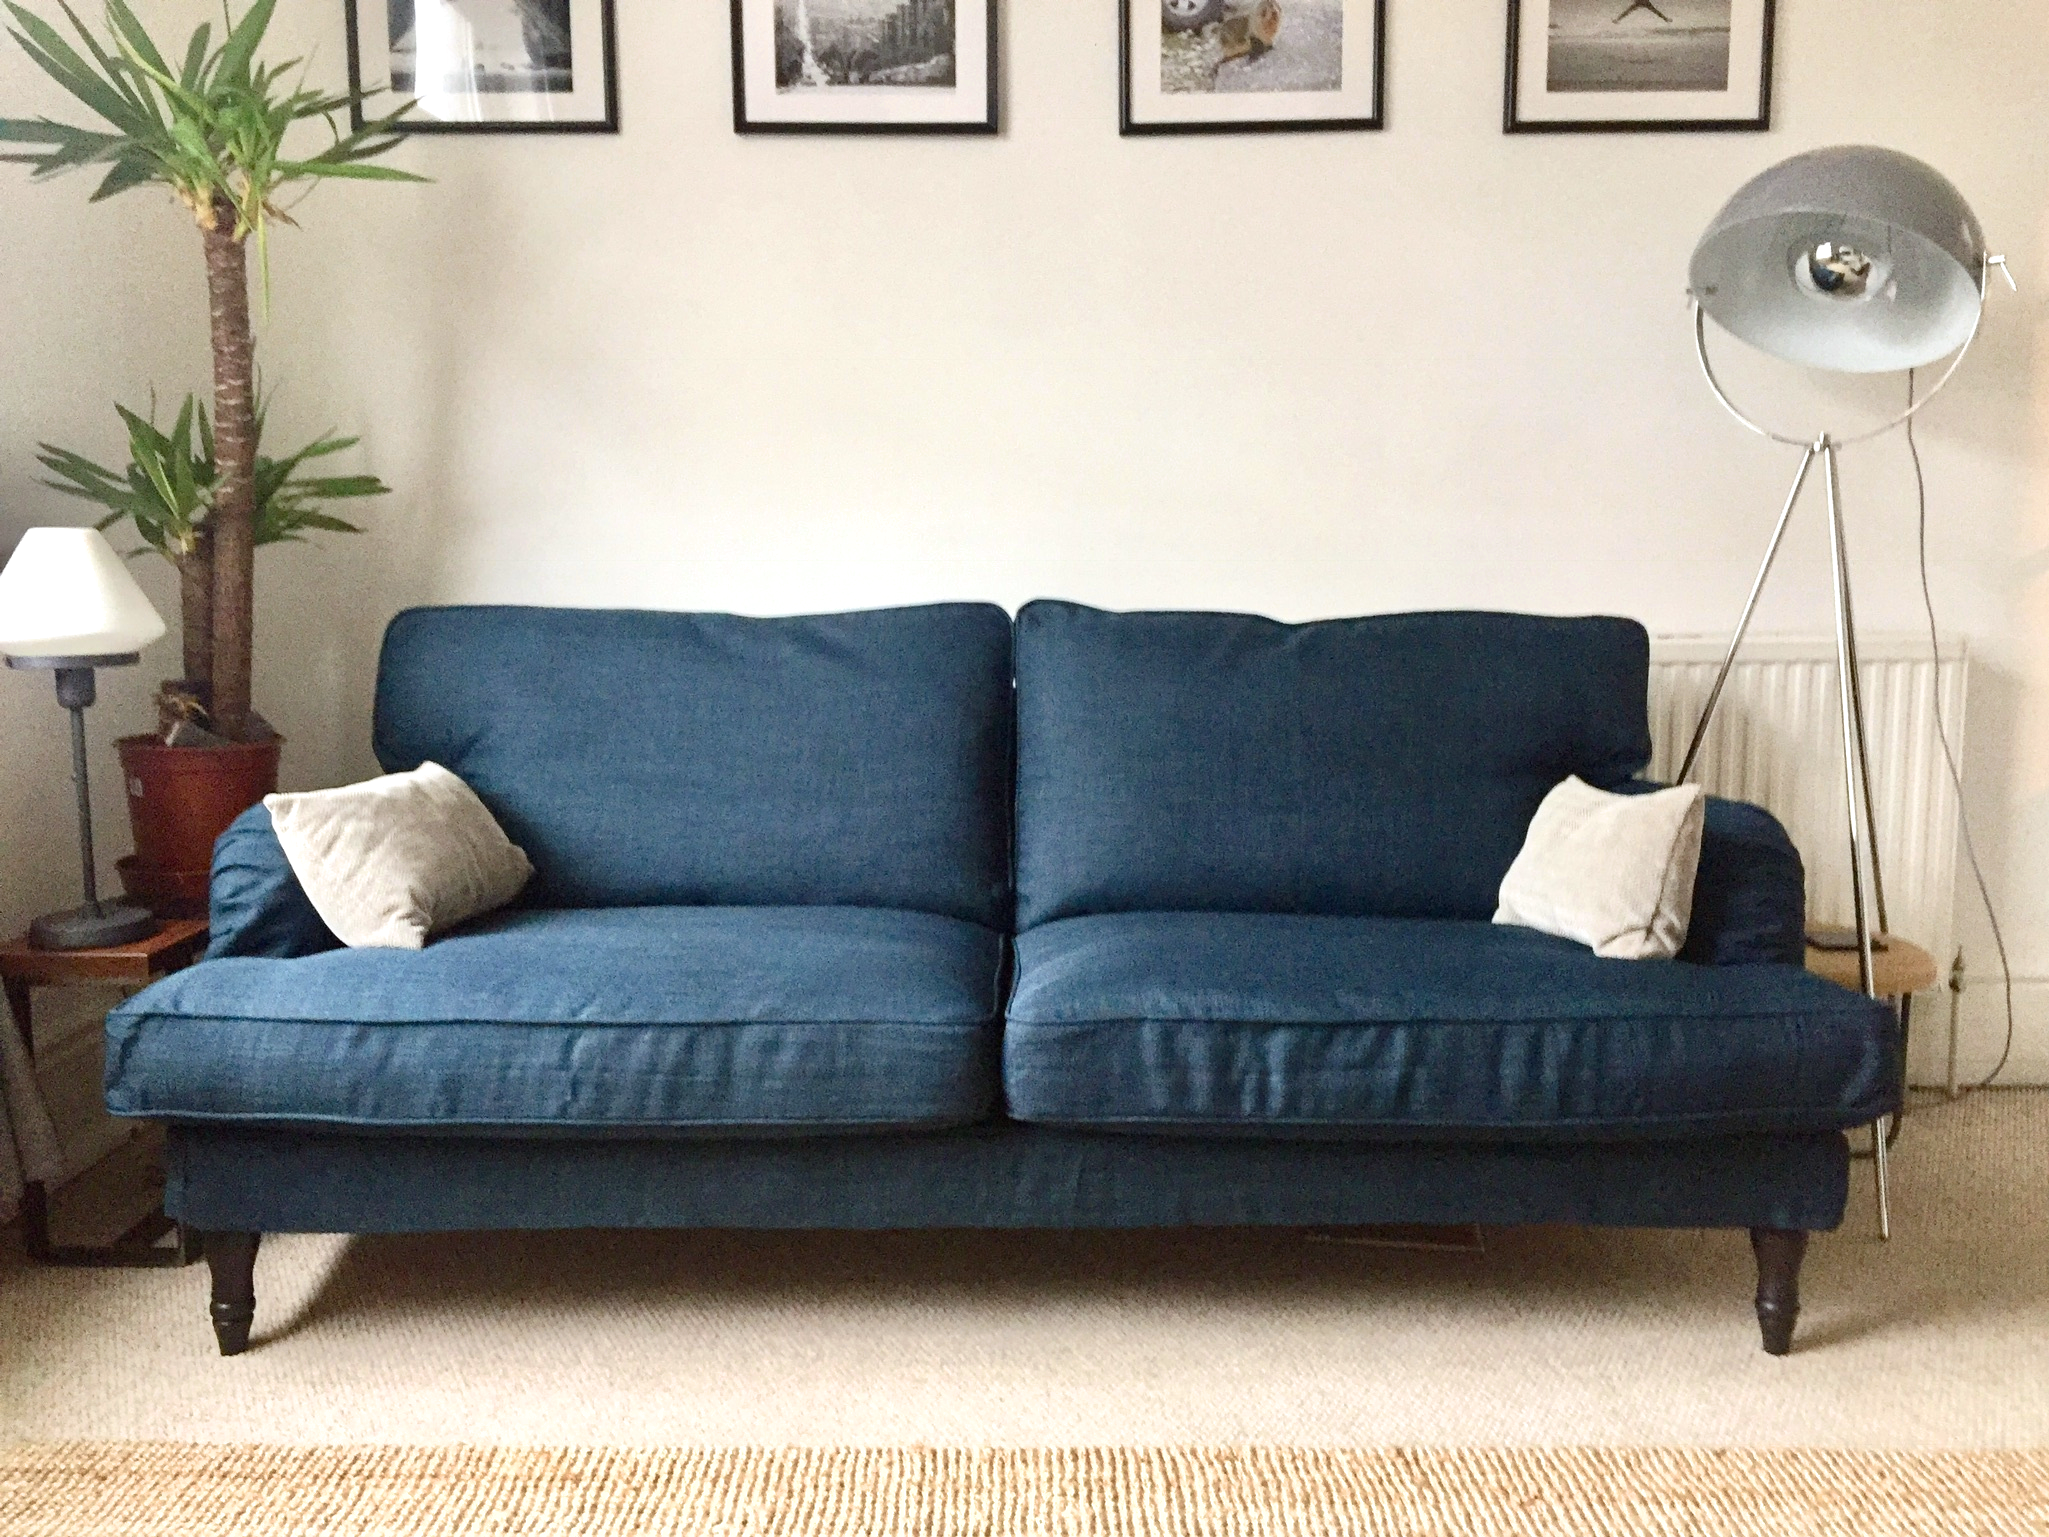 Ikea Stocksund Sofa In Kino Denim Blue Couch Covers By Comfort Works Click To Buy Slipcovers In The Same Look G Stocksund Sofa Ikea Blue Sofa Sofa Covers